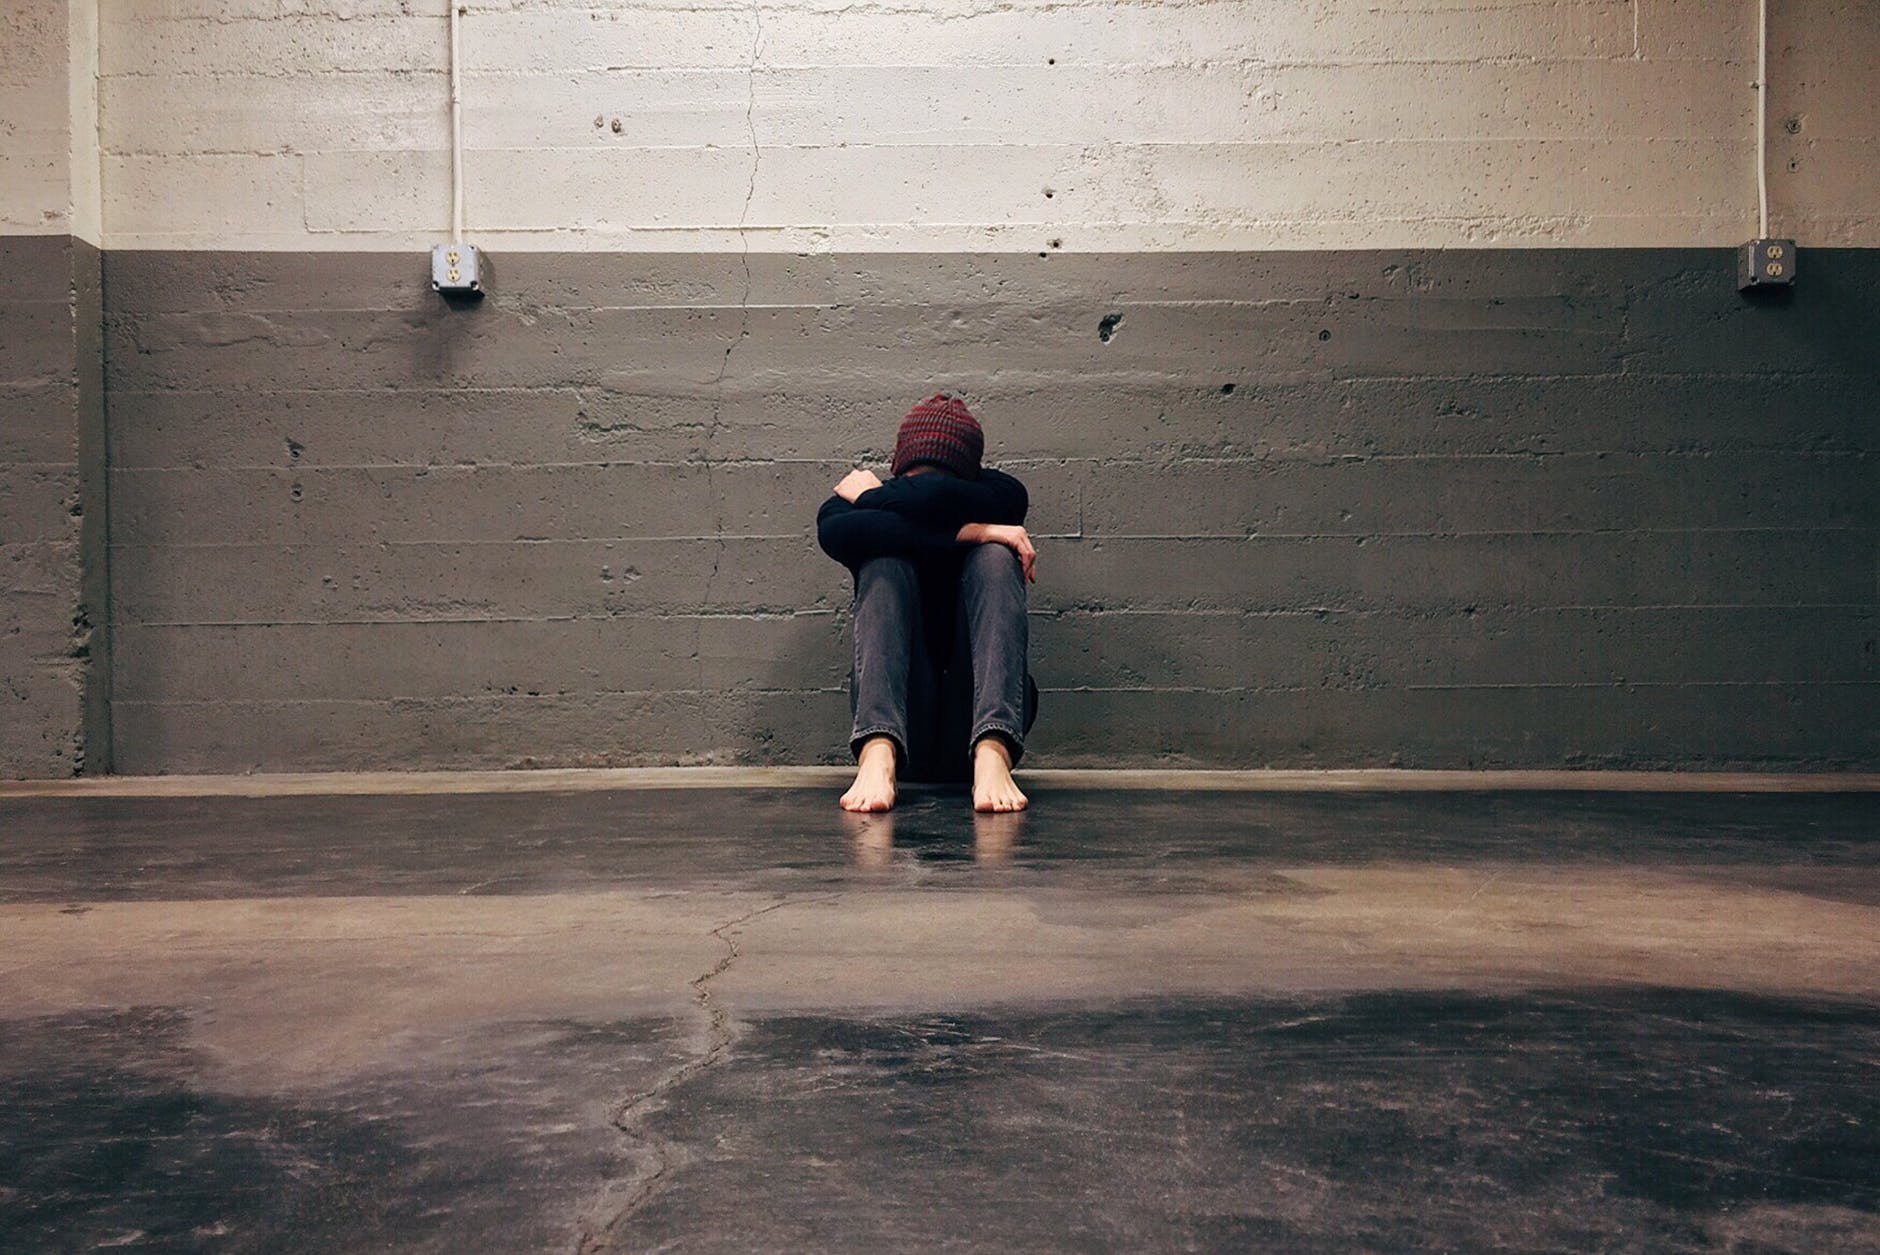 A person sits against a concrete wall with their arms on their knees and their head down. They are barefoot on a concrete floor.